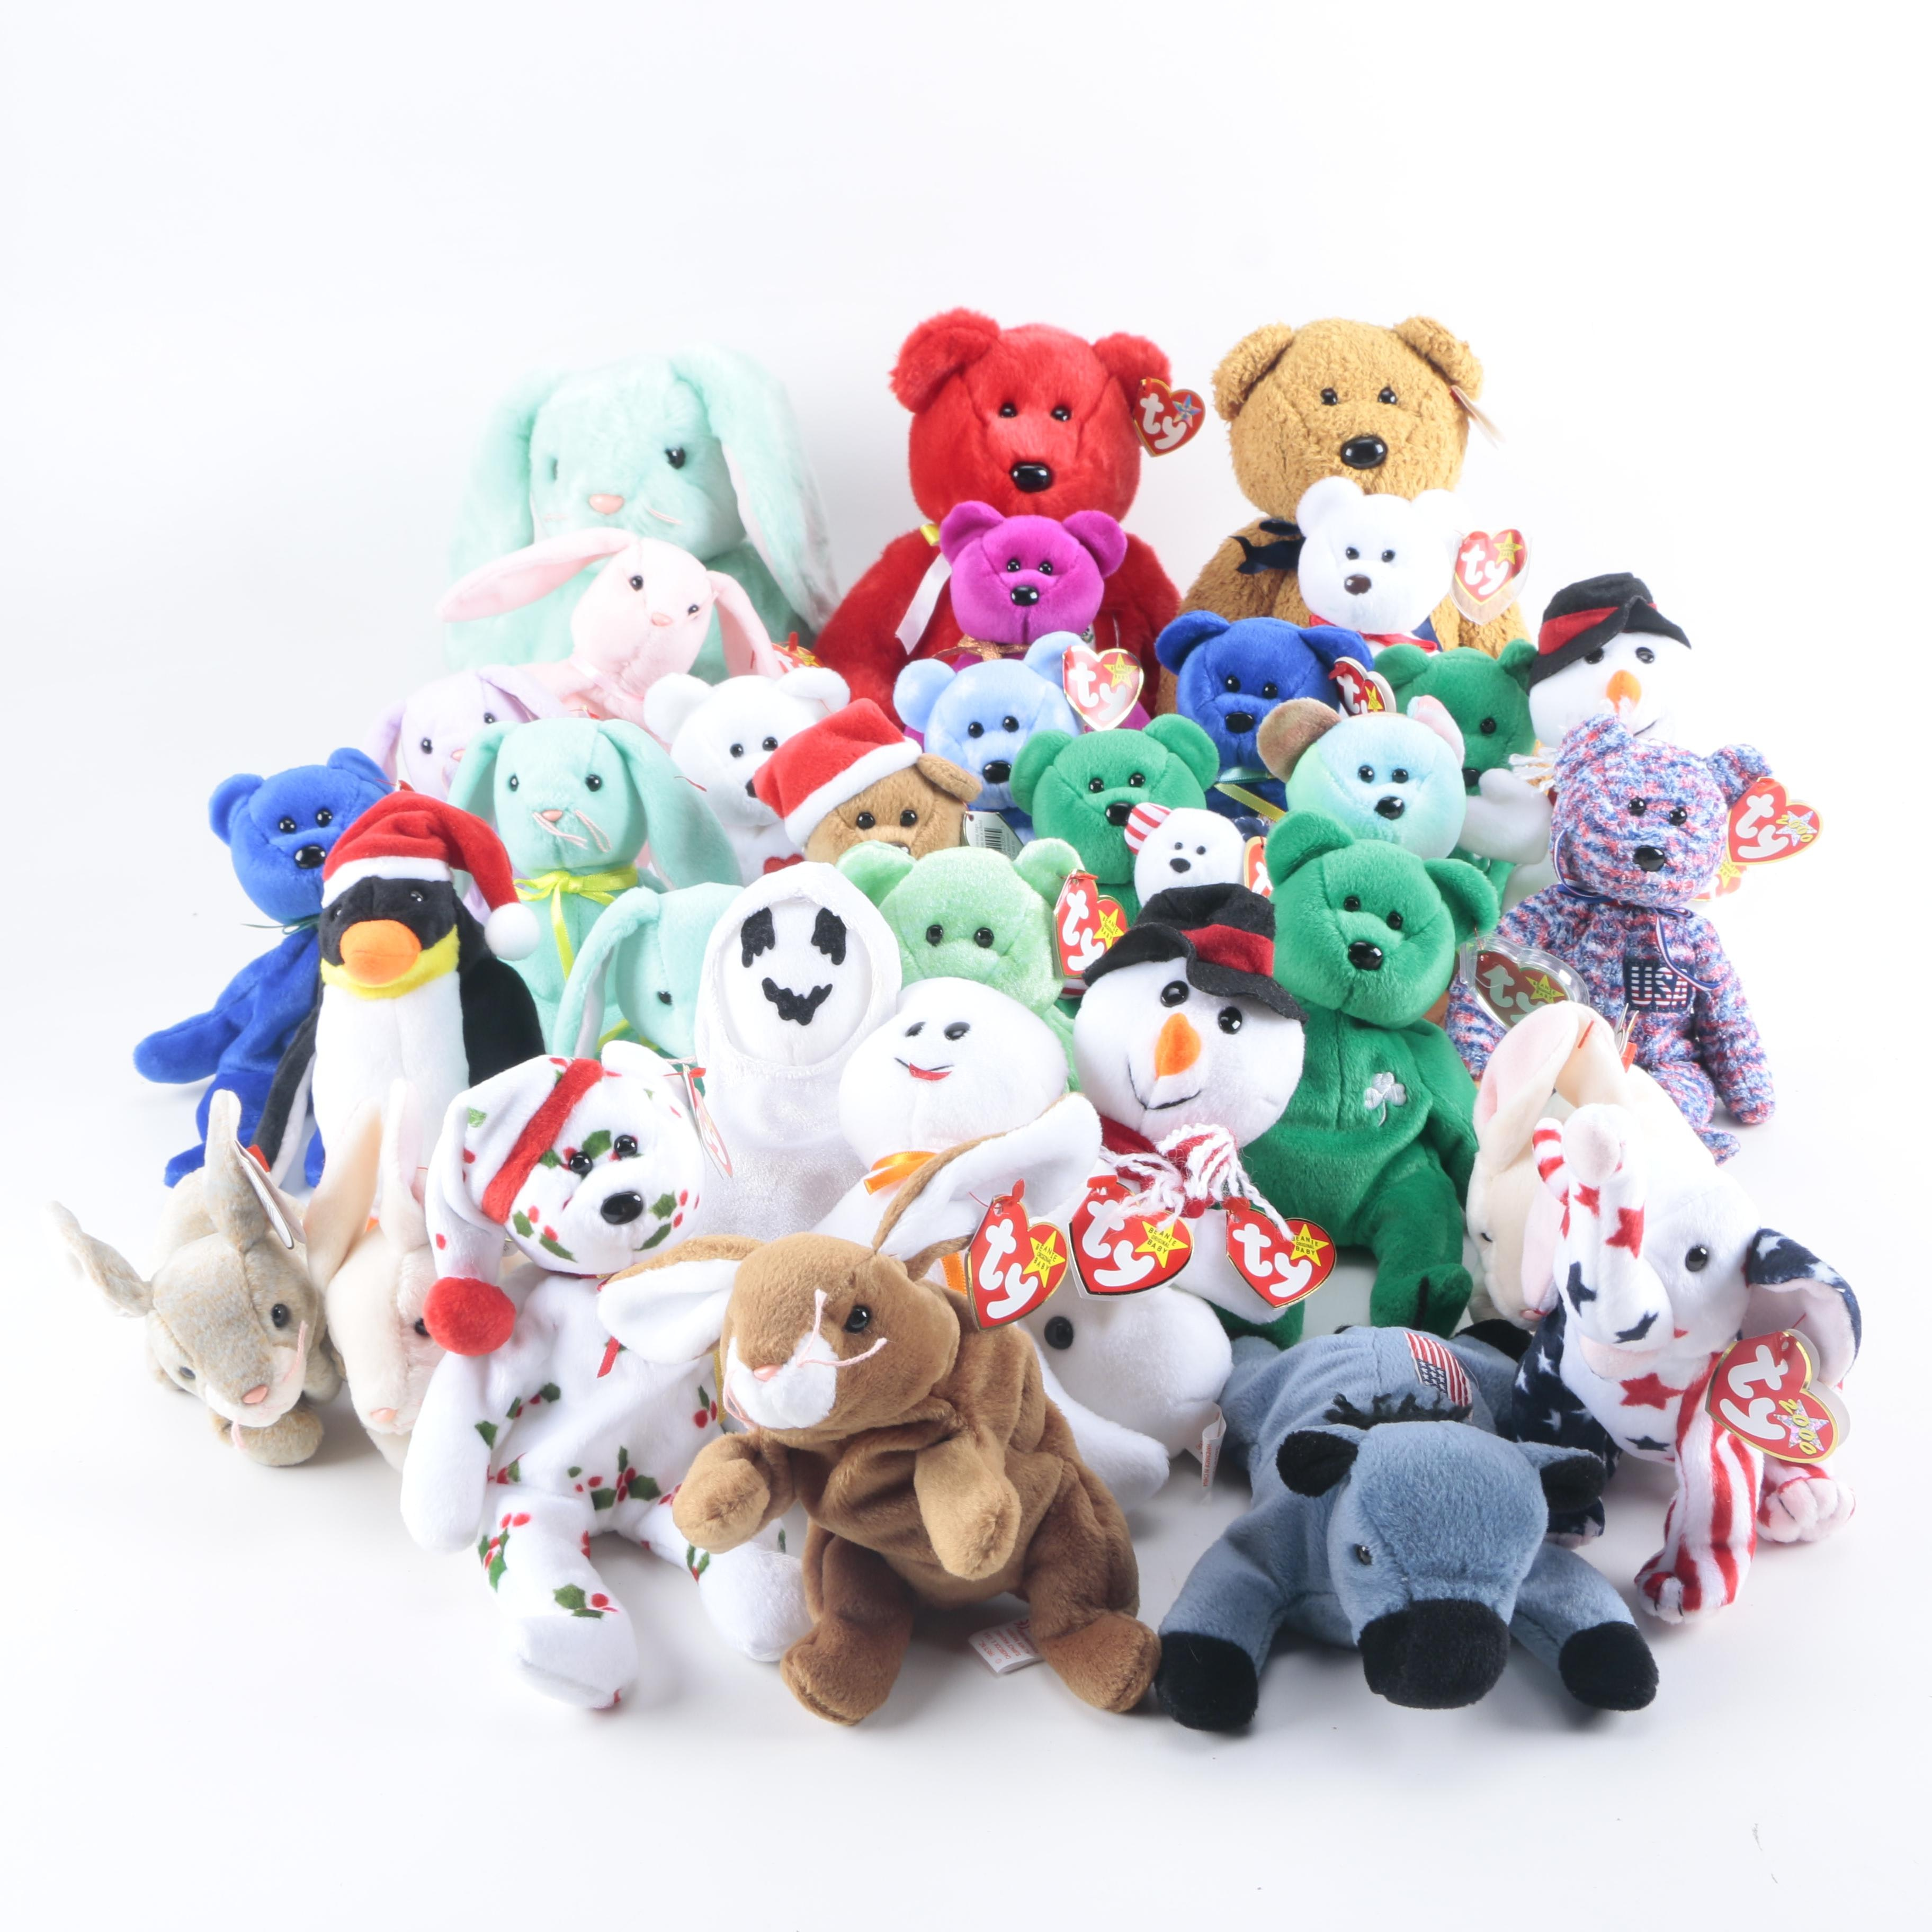 Ty Beanie Babies Including Clubby the Bear and Lefty the Donkey